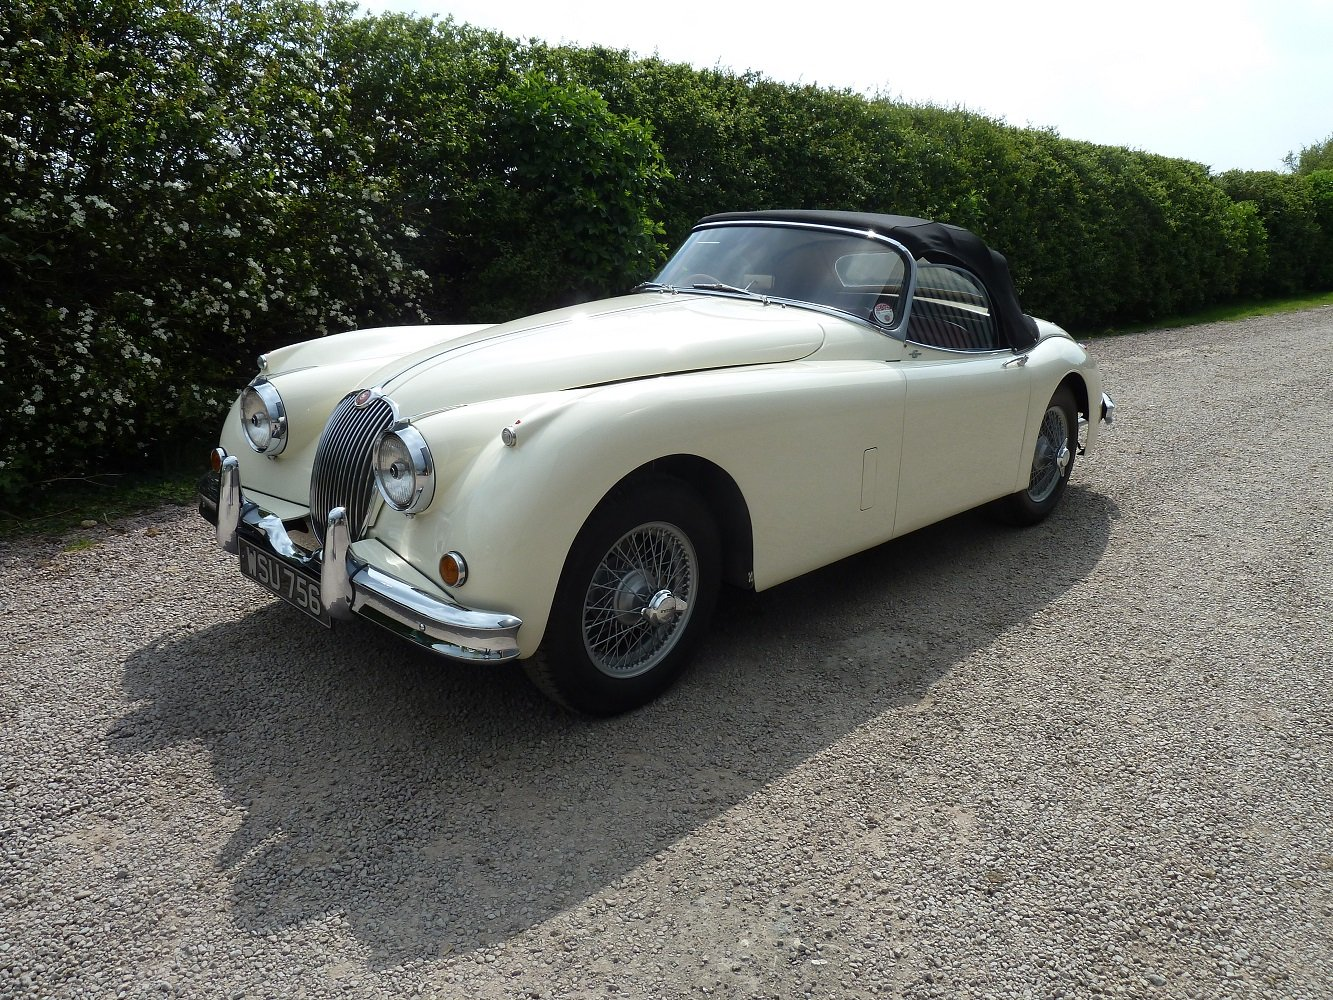 1958 Jaguar 1959 XK150S Roadster  For Sale (picture 1 of 6)